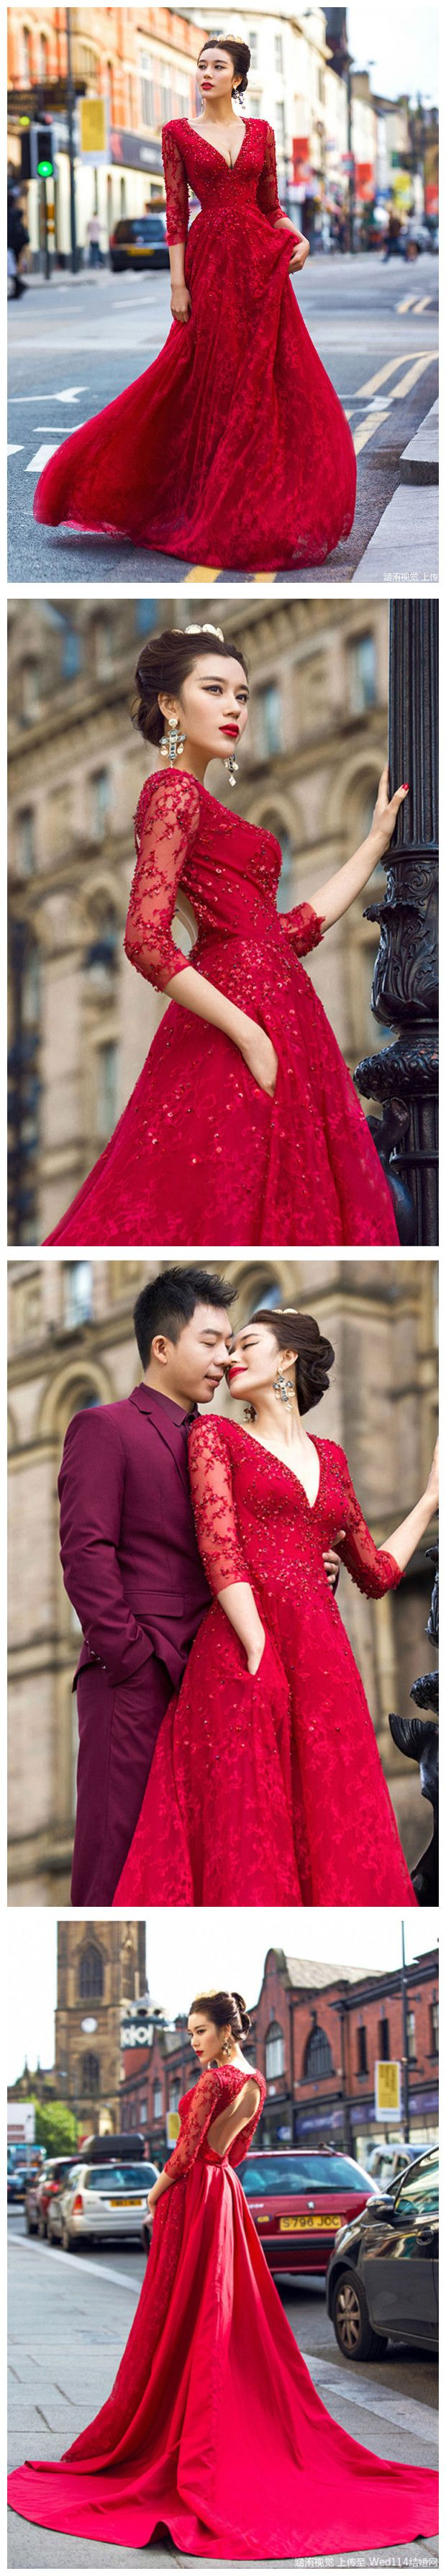 red aline prom dresses v neck beading lace modest long prom